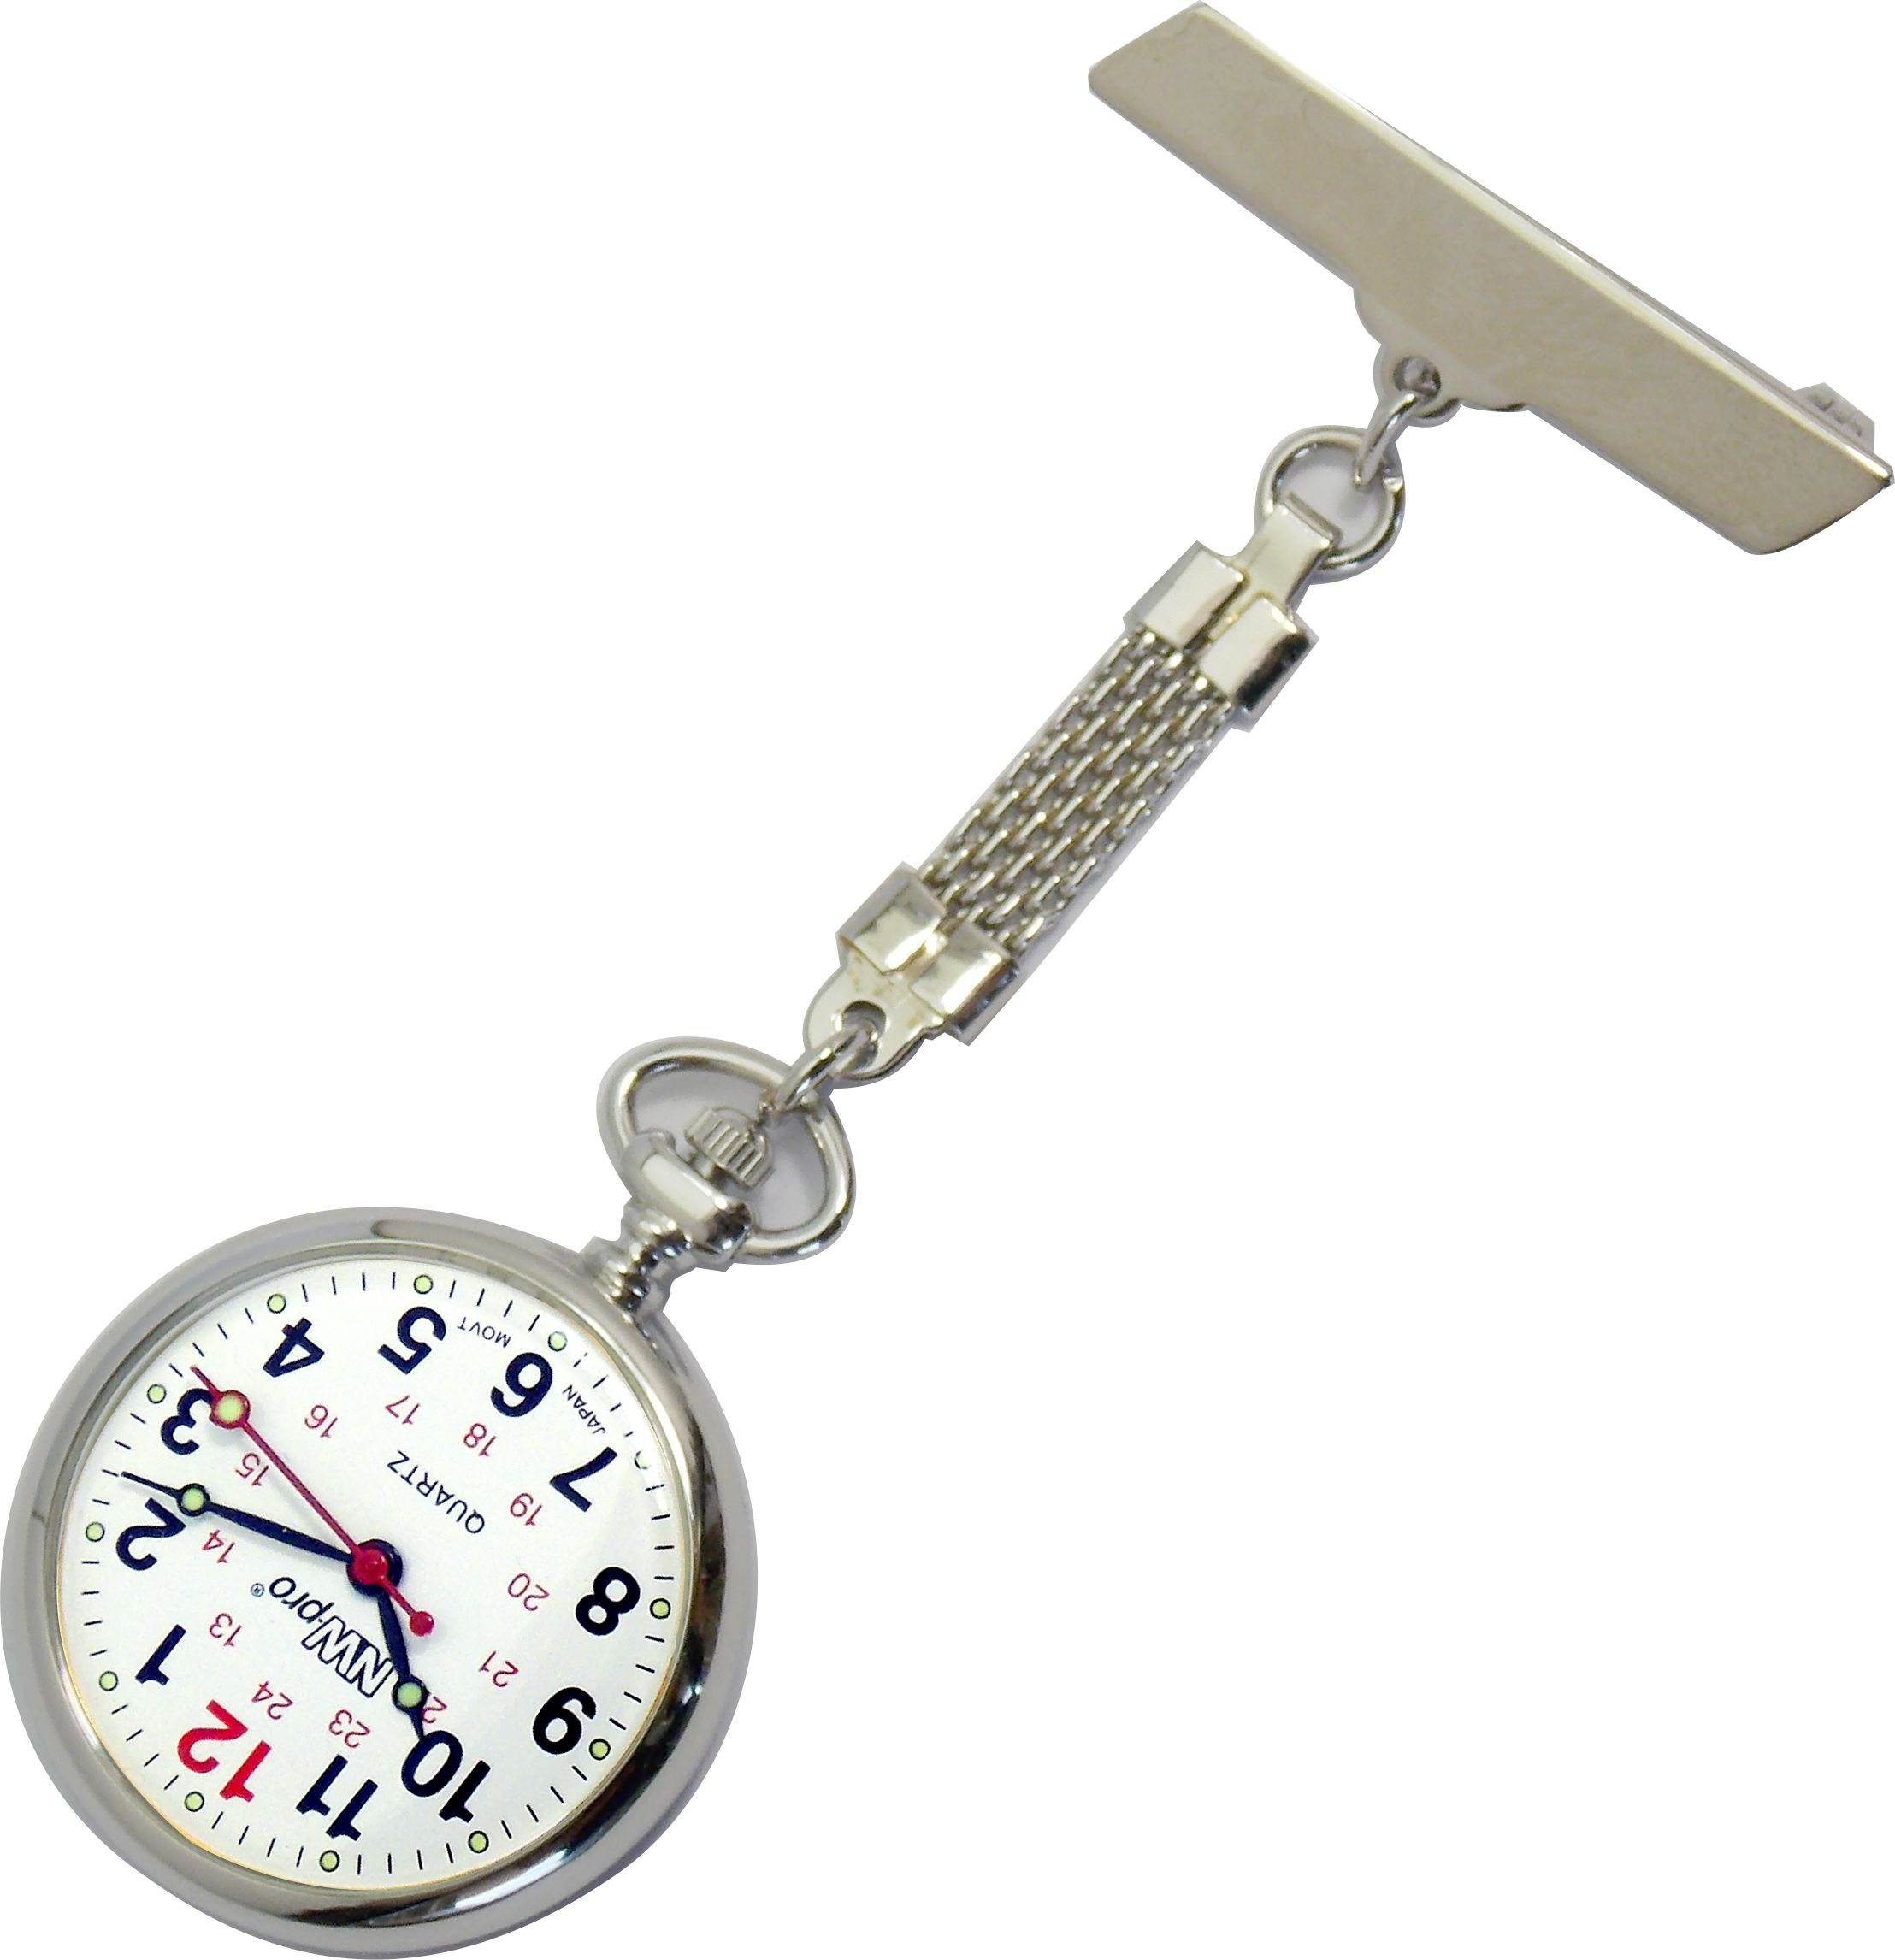 Nurses Pinned Watch - Nw-pro Braided - Silver - White